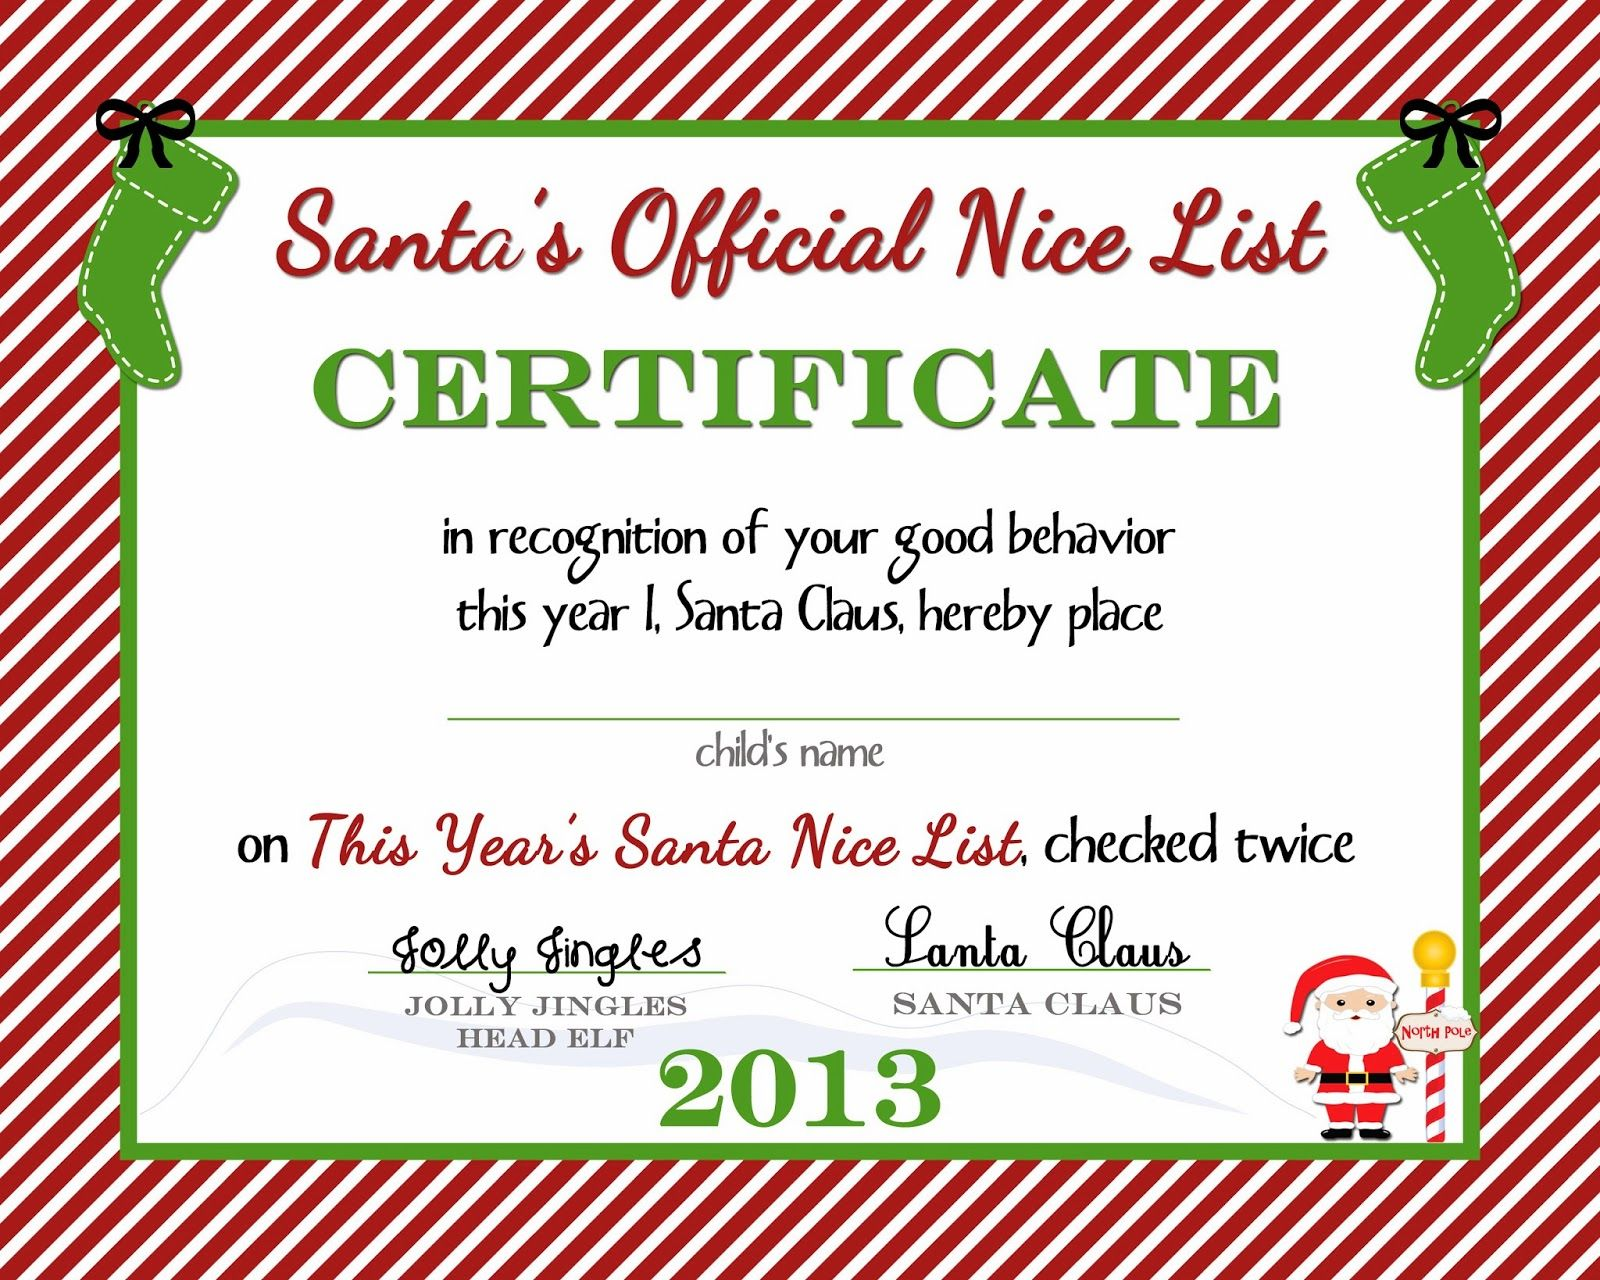 printable nice list certificate from the north pole printable nice list certificate from the north pole